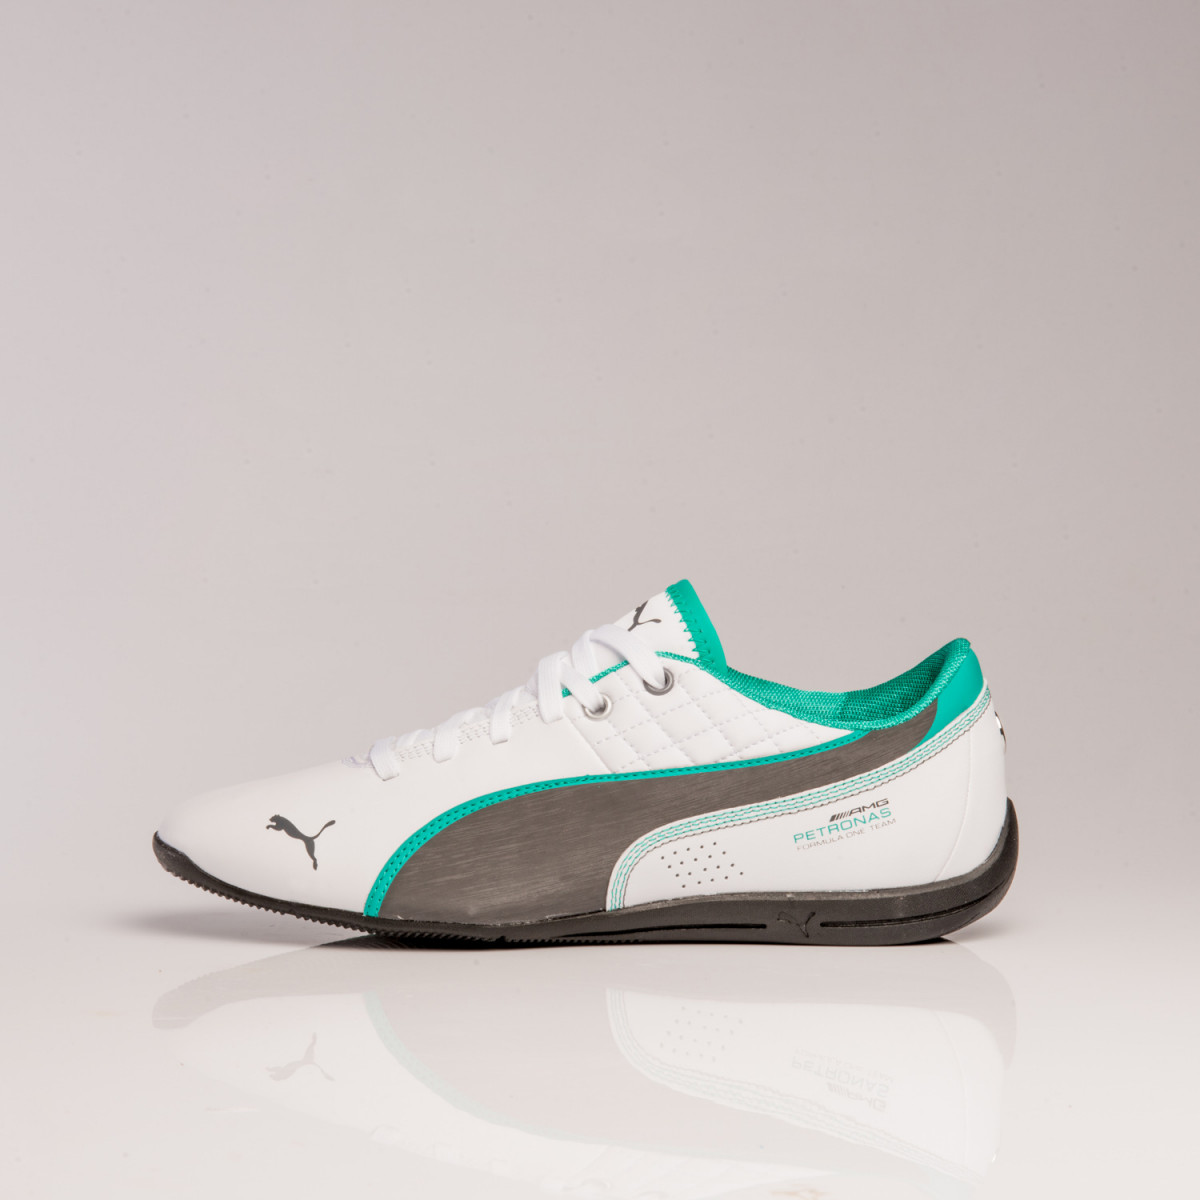 Zapatillas Puma Mamgp Drift Cat 6